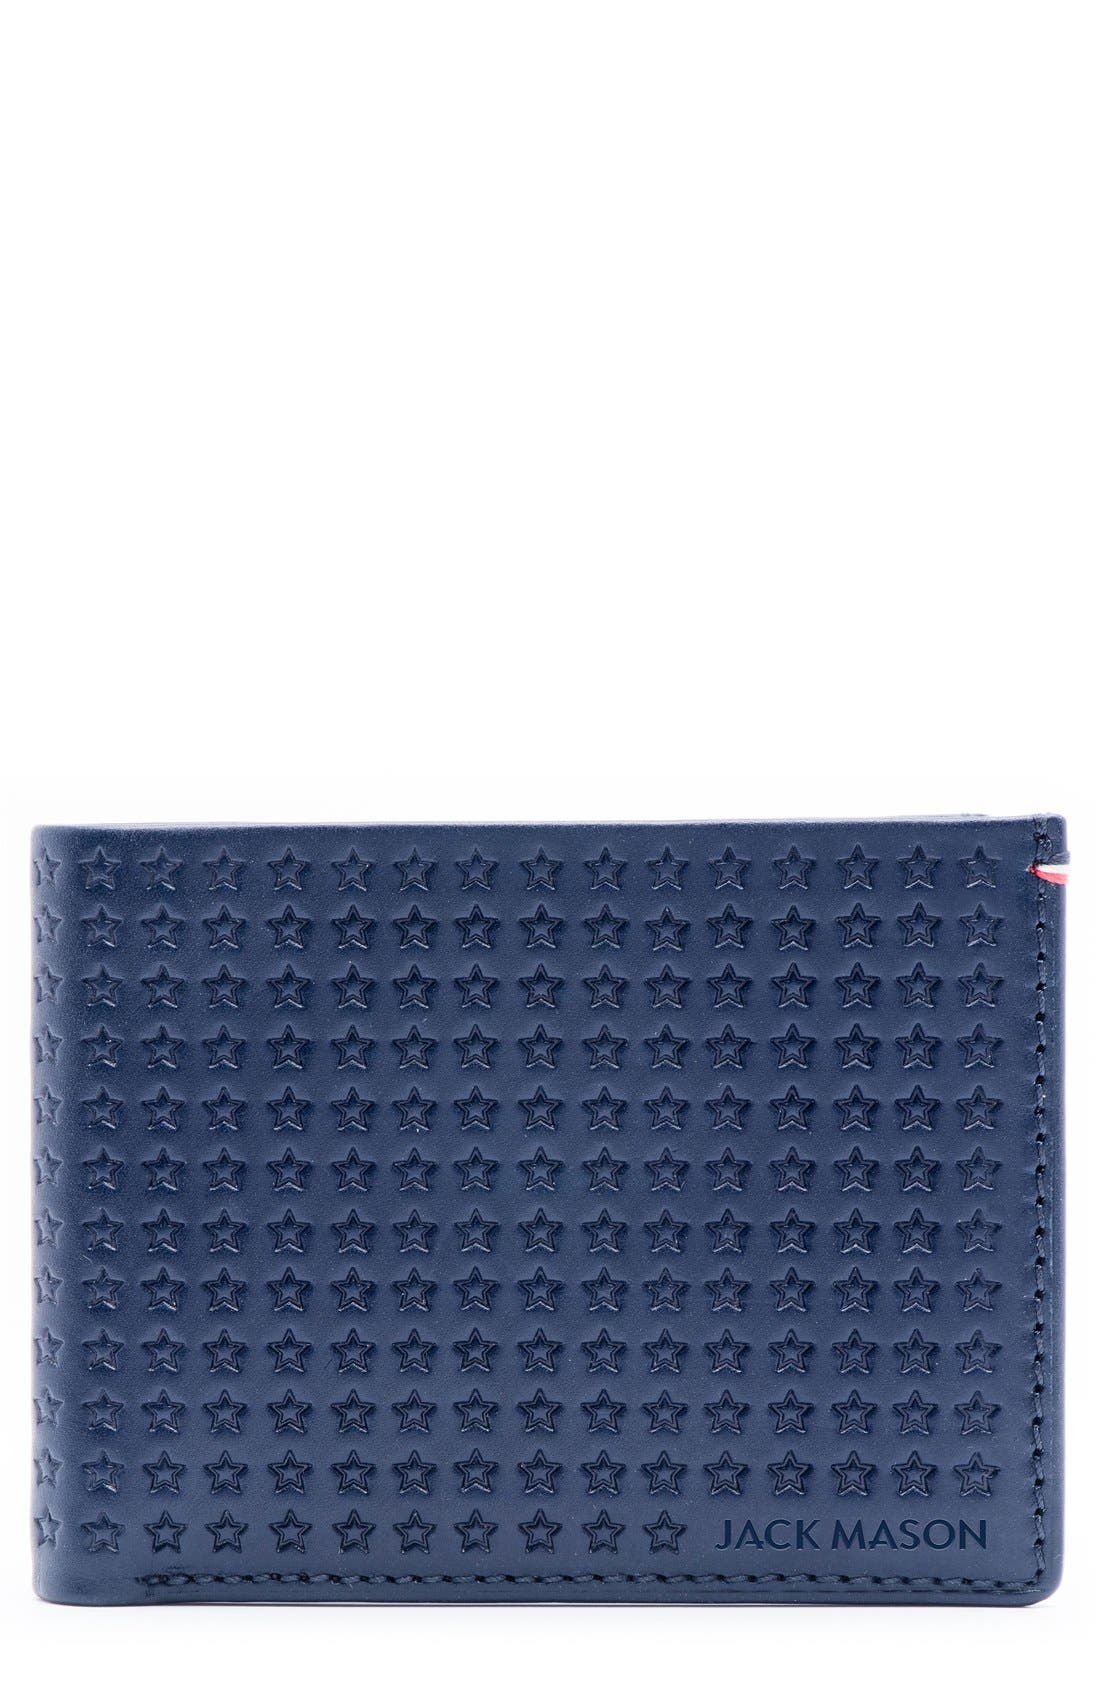 Star Leather Bifold Wallet,                             Main thumbnail 1, color,                             Navy